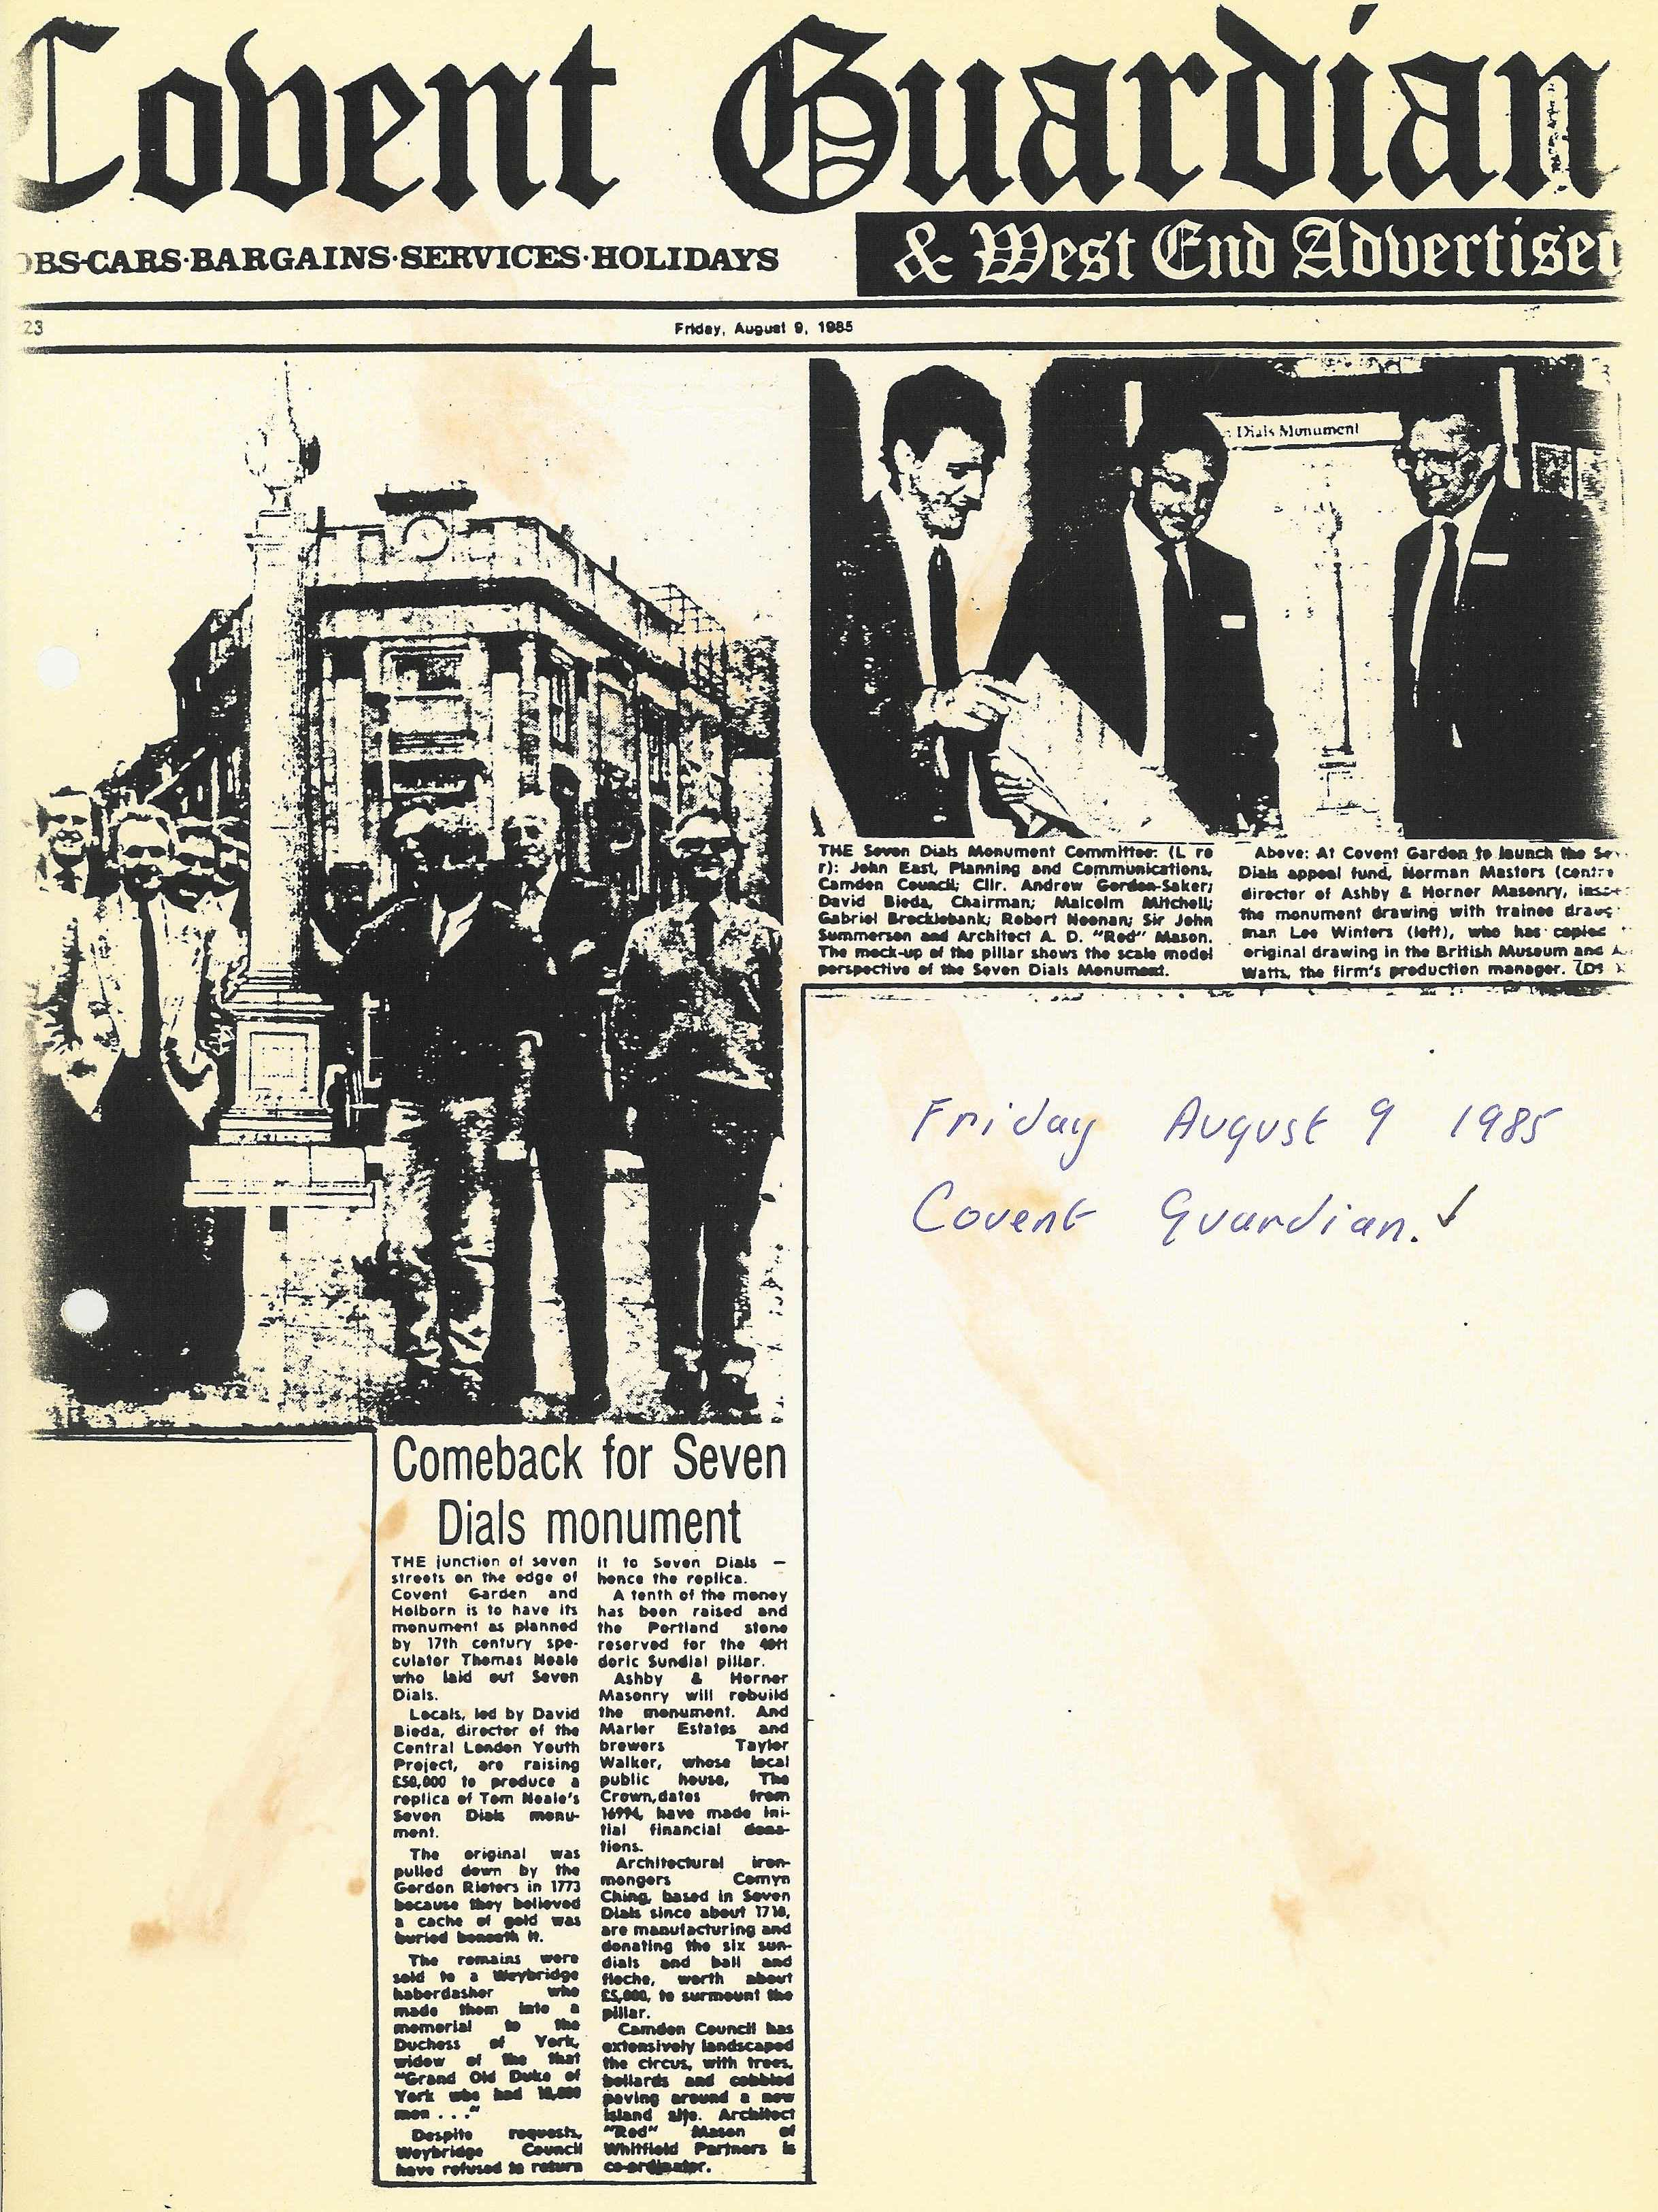 9 Aug. 1985 – Covent Guardian and West End Advertiser: Comeback for Seven Dials monument.